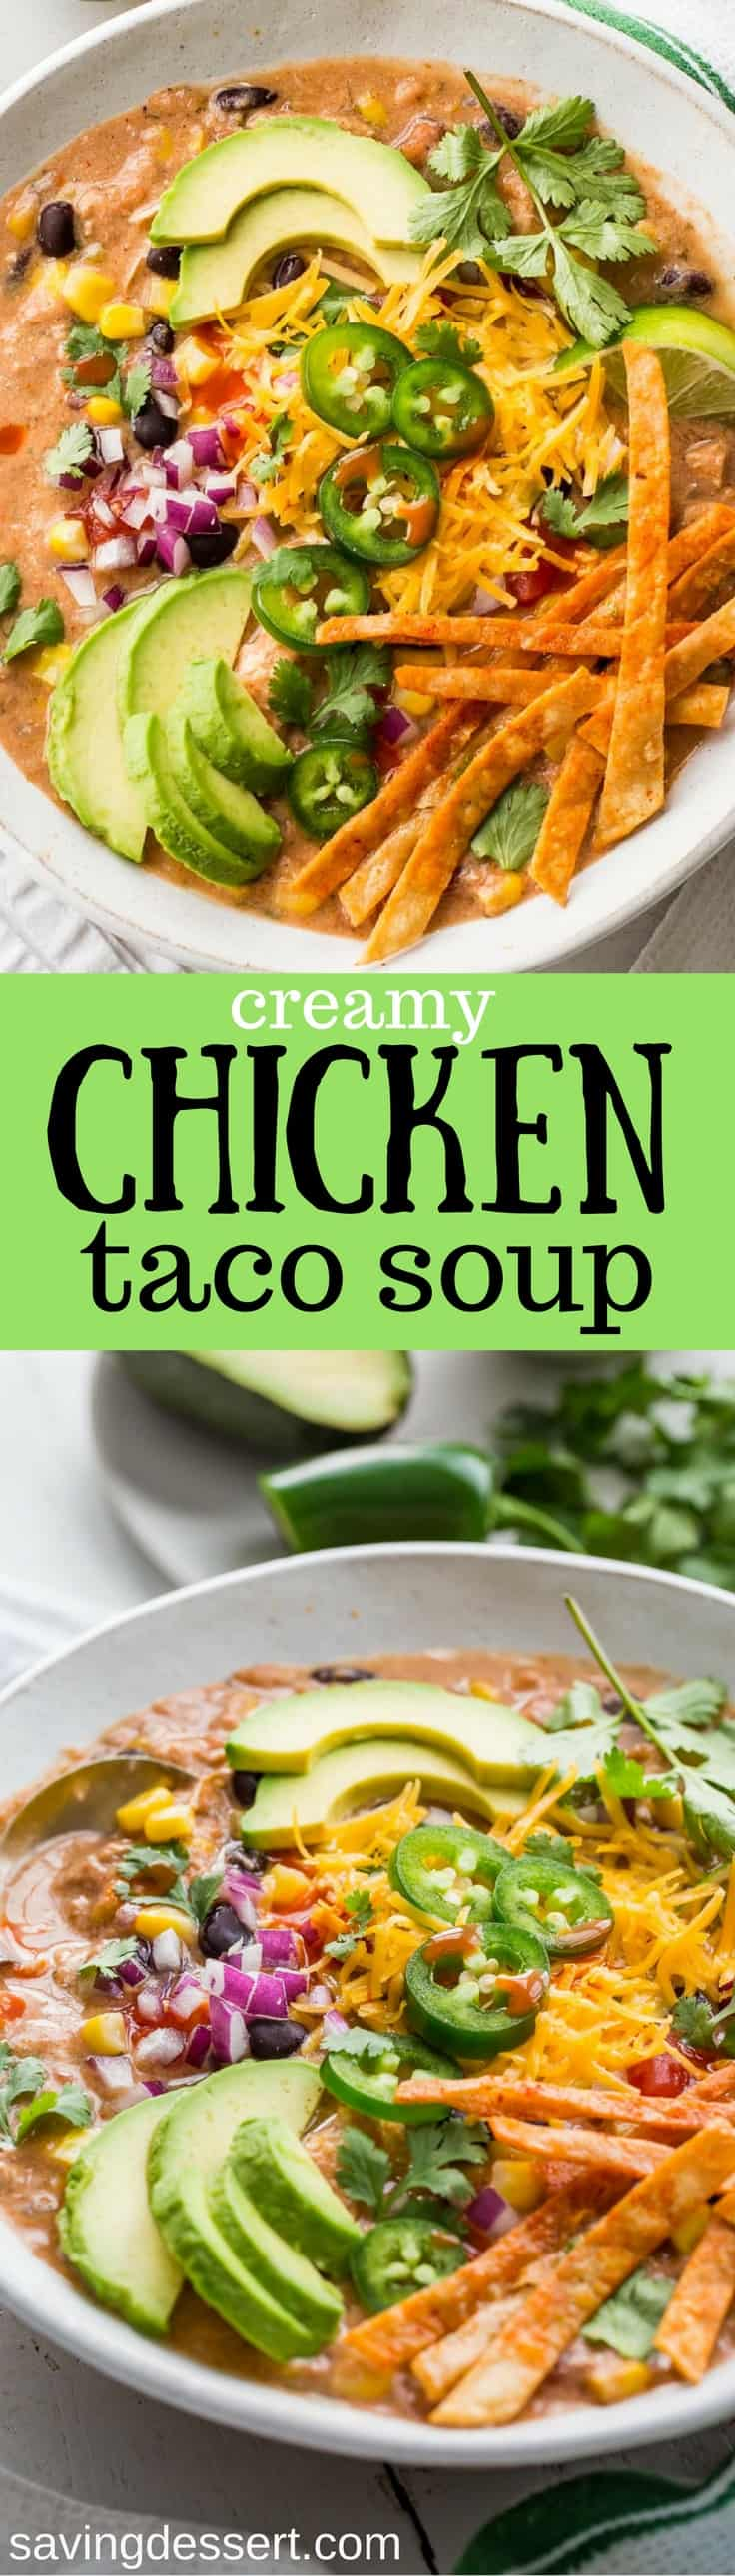 Creamy Taco Soup ~ a healthy, protein packed, fiber rich, flavorful soup loaded with tender chicken and plenty of spices, perfect for the slow cooker or the stove top! savingdessert.com #savingroomfordessert #creamytacosoup #tacosoup #healthysoup #soup #Mexicansoup